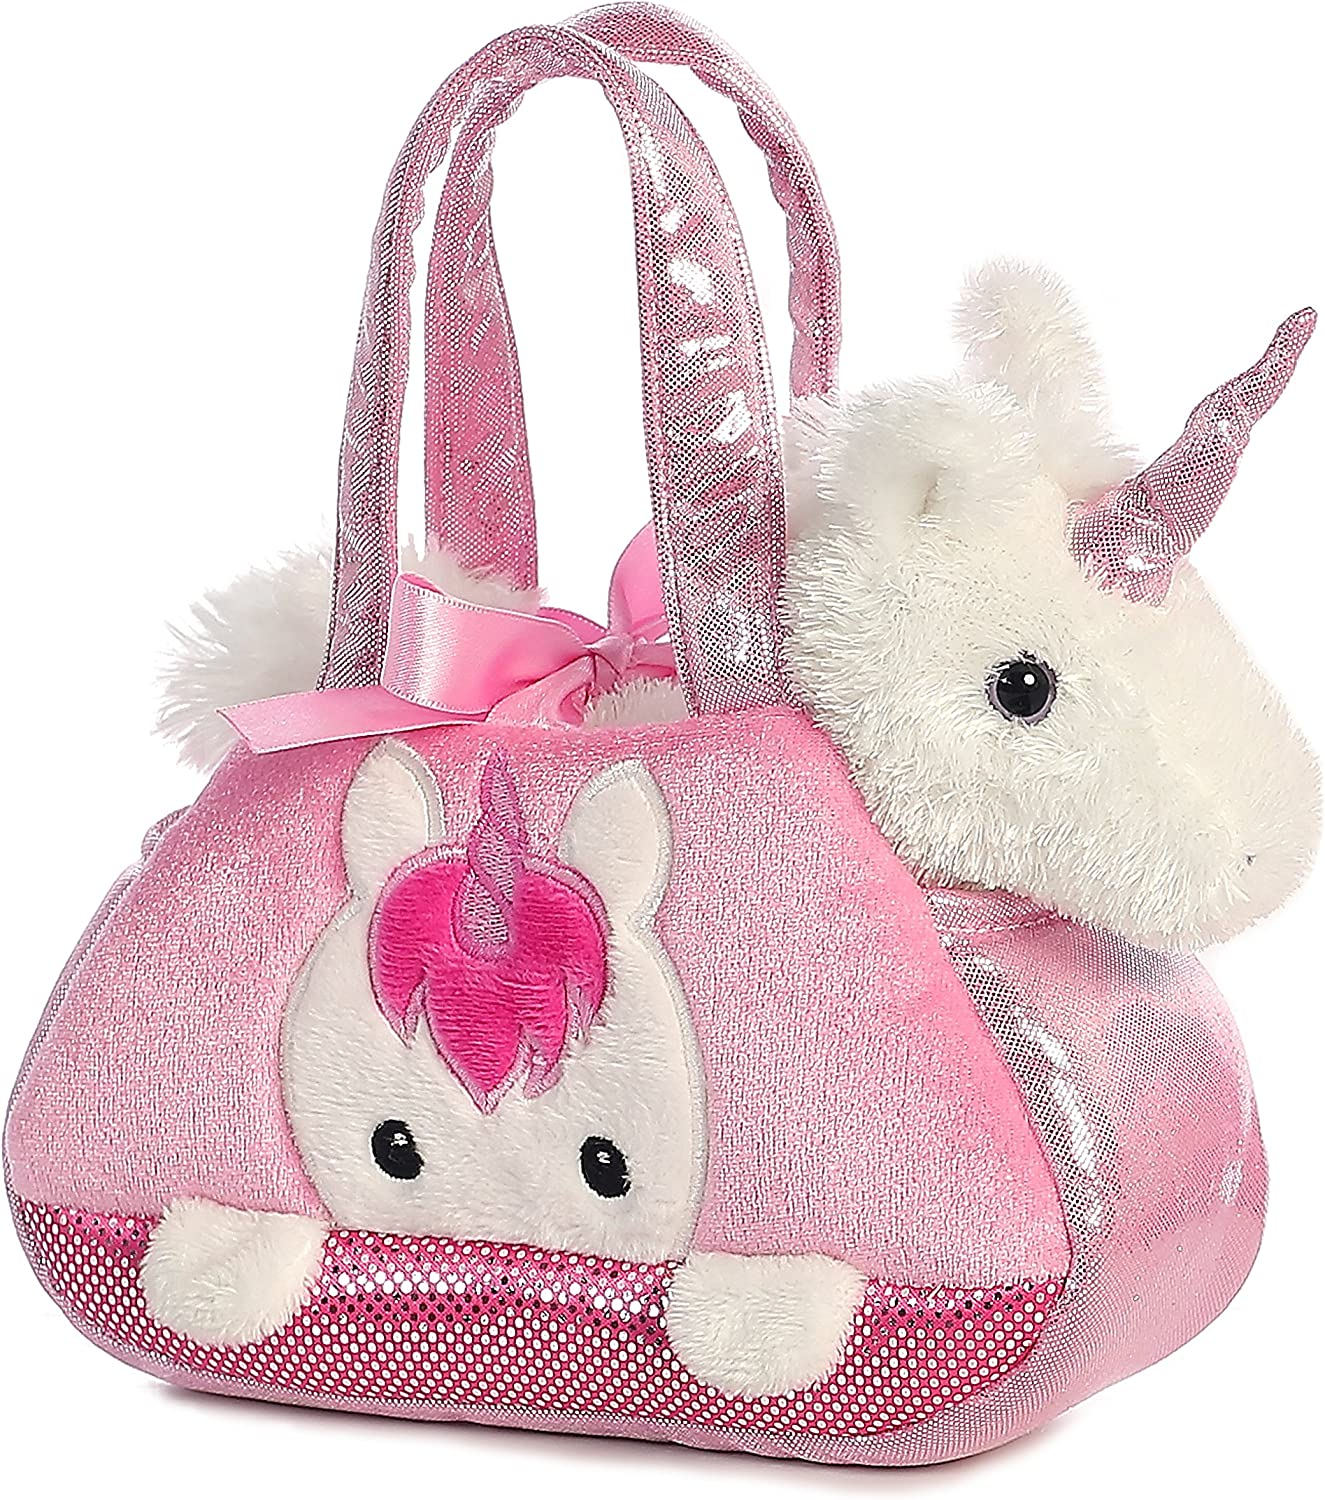 Top 15 Best Unicorn Toys And Gift For Girls in 2020 4